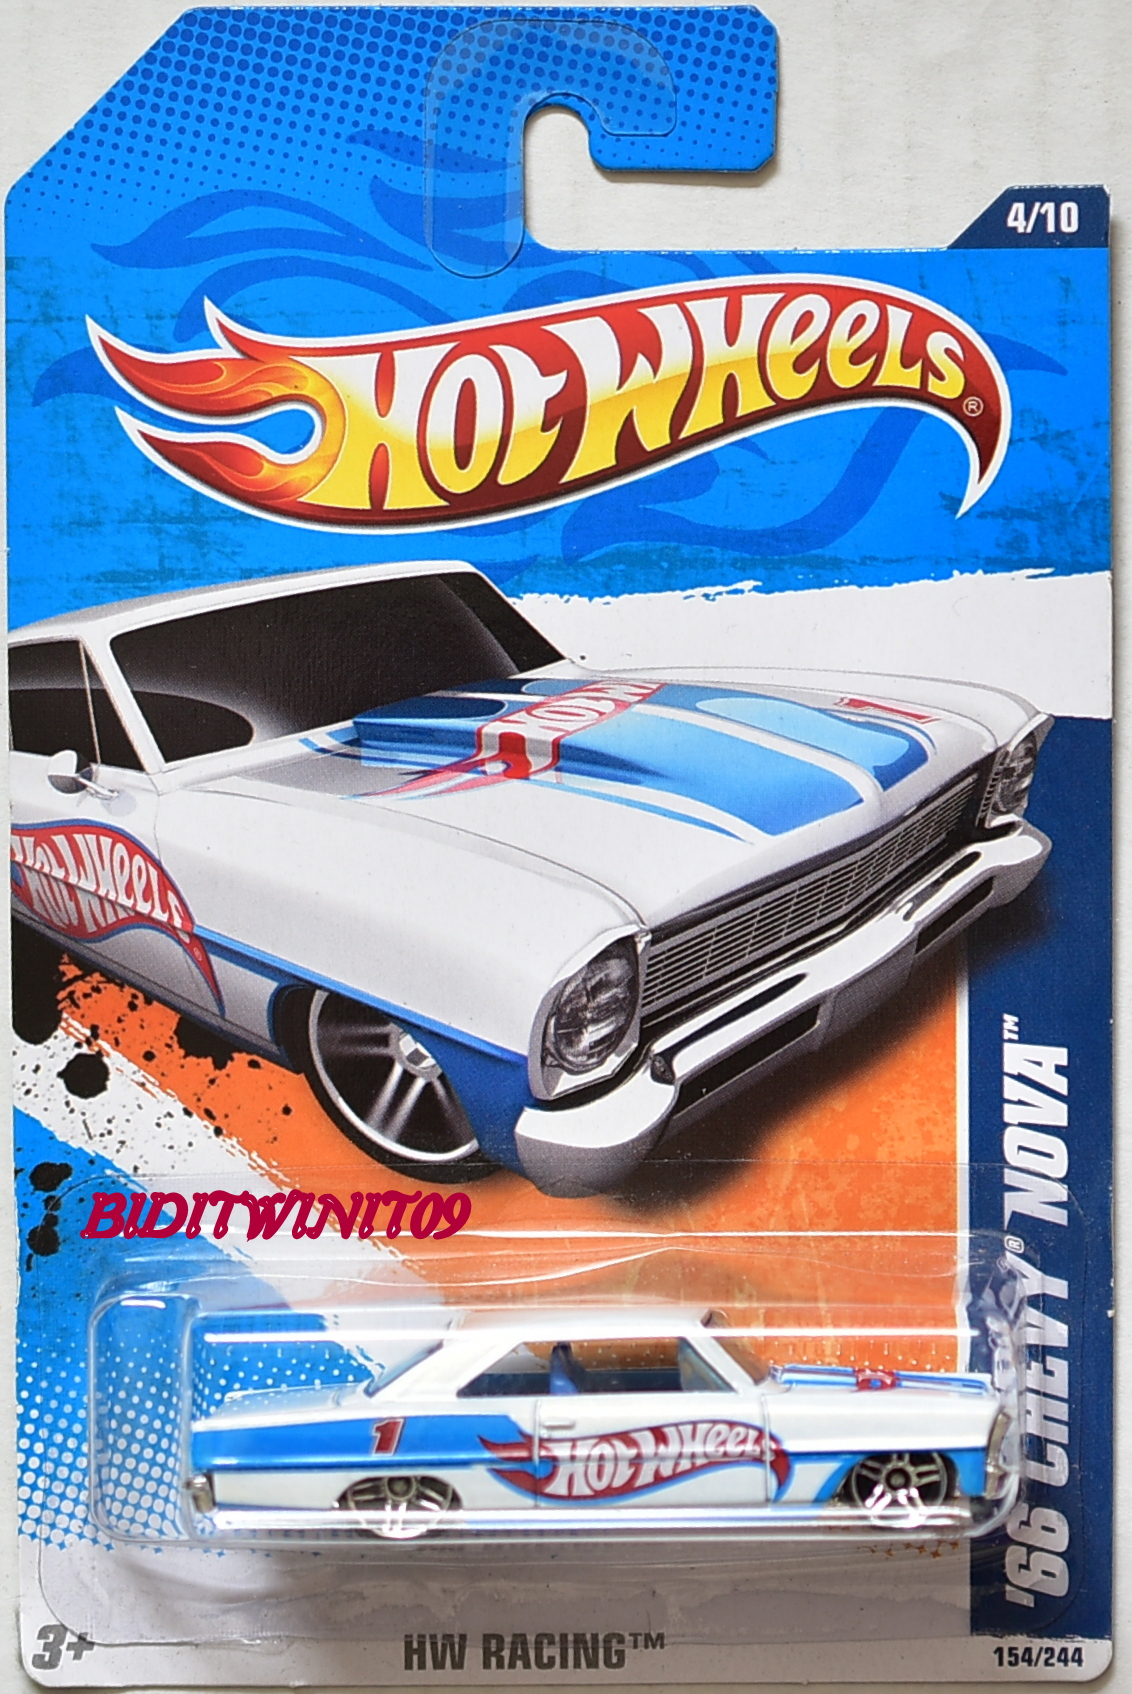 HOT WHEELS 2011 #04/10 '66 CHEVY NOVA HW RACING